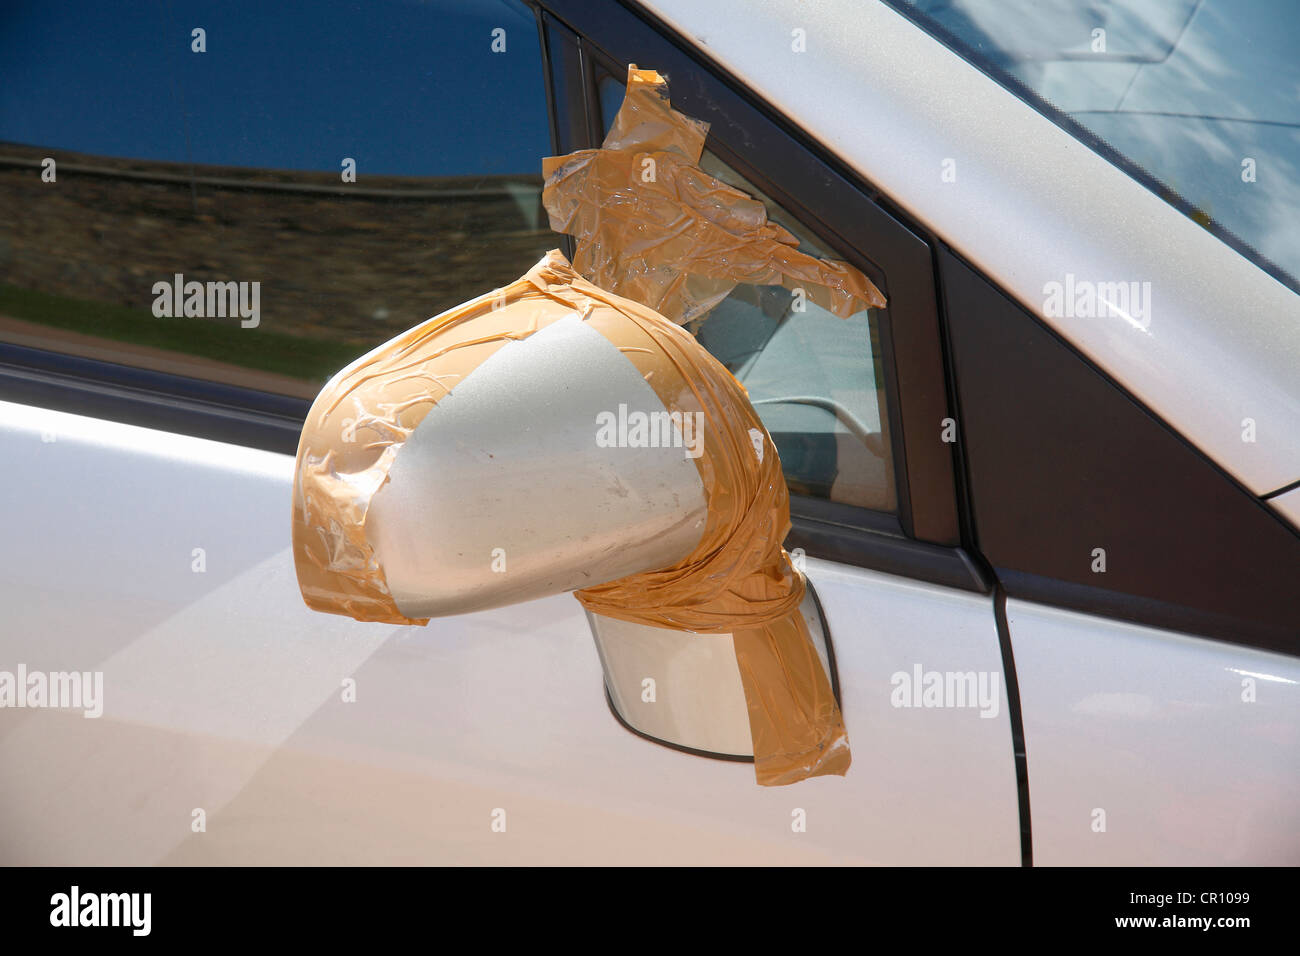 Car mirror, damaged and poorly repaired - Stock Image